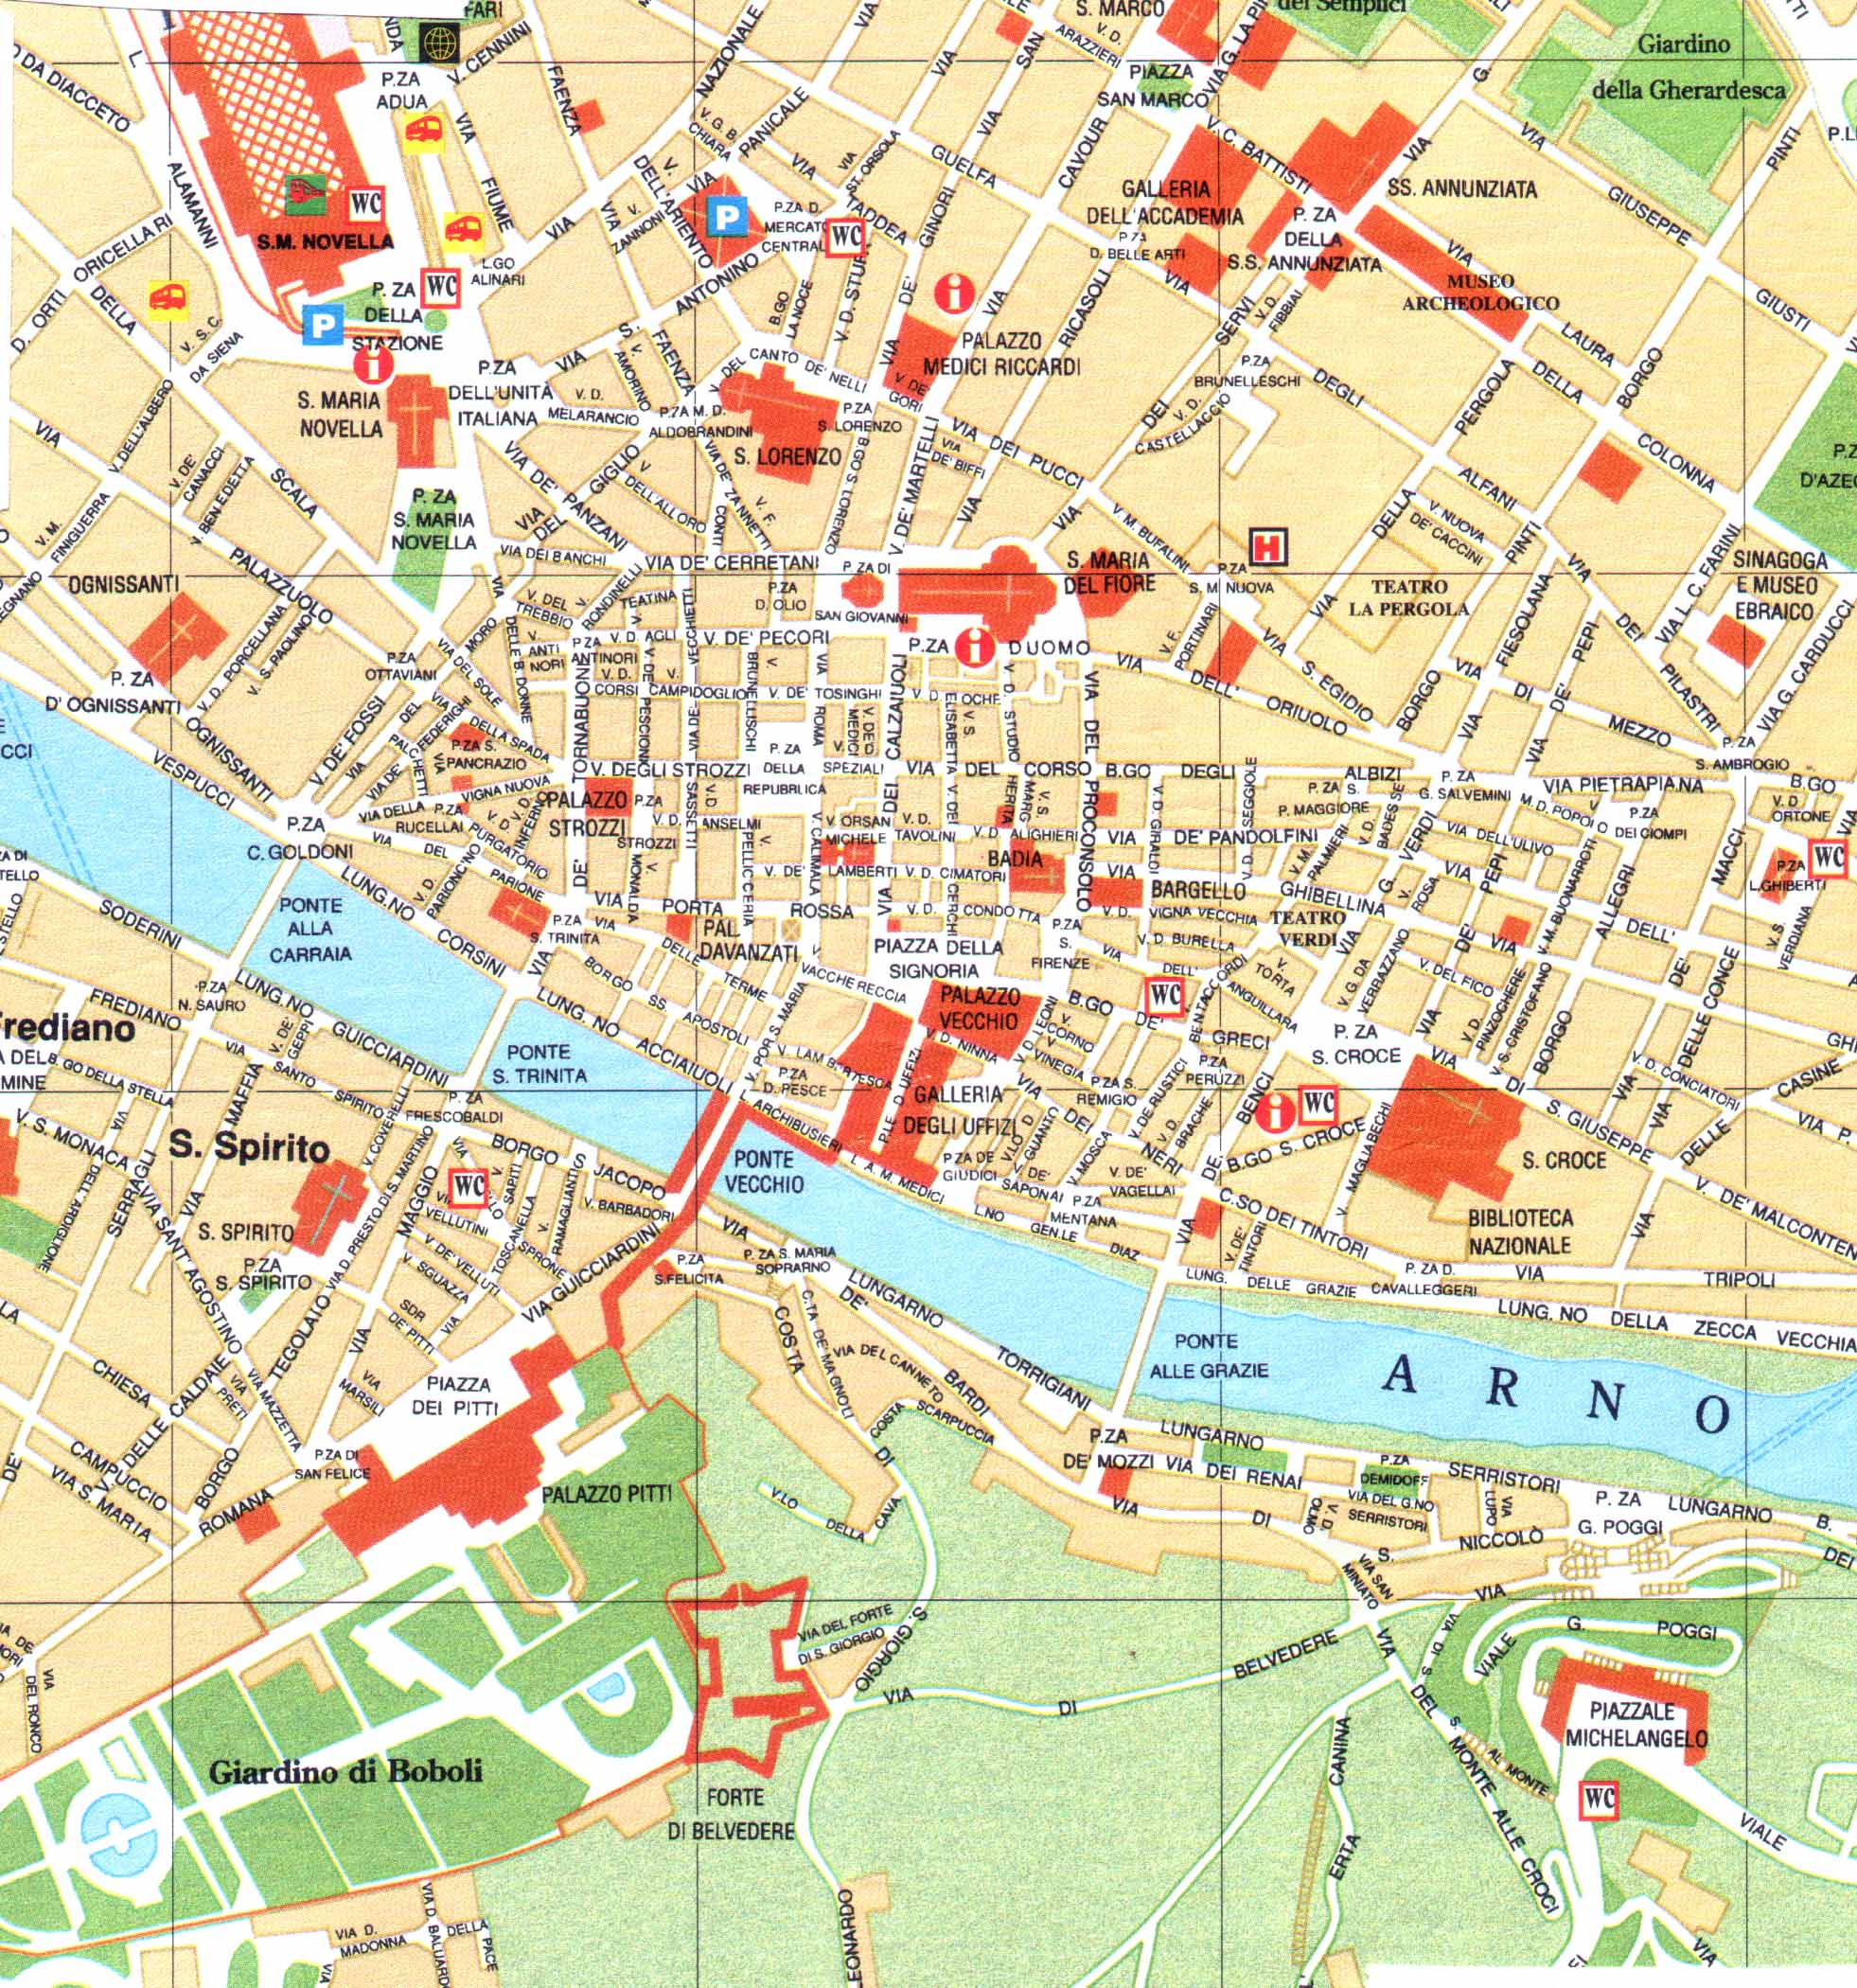 Florence map large map of Florence Italy – Florence Italy Tourist Map